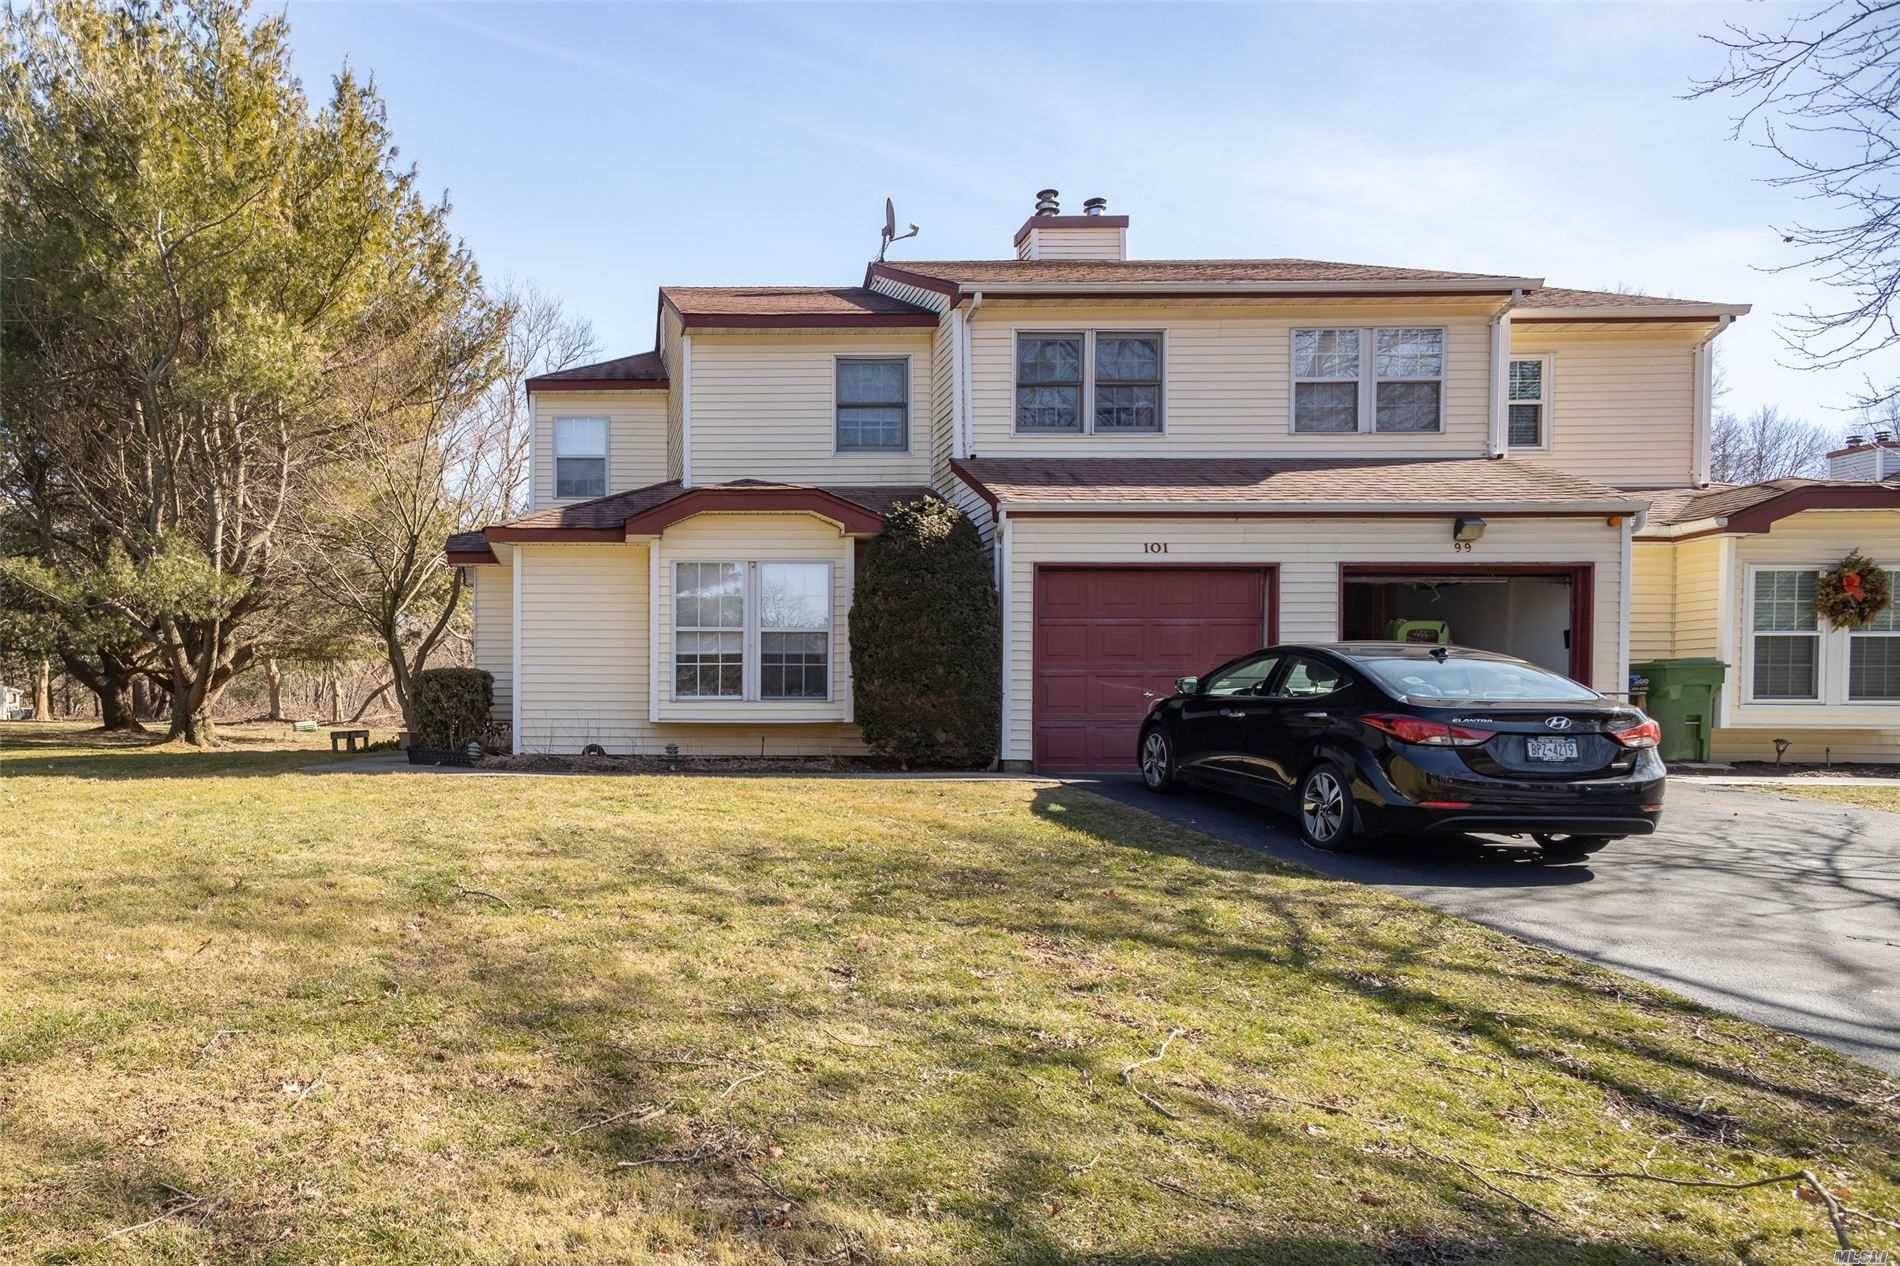 Property for sale at 101 Strathmore Court Drive, Coram NY 11727, Coram,  New York 11727